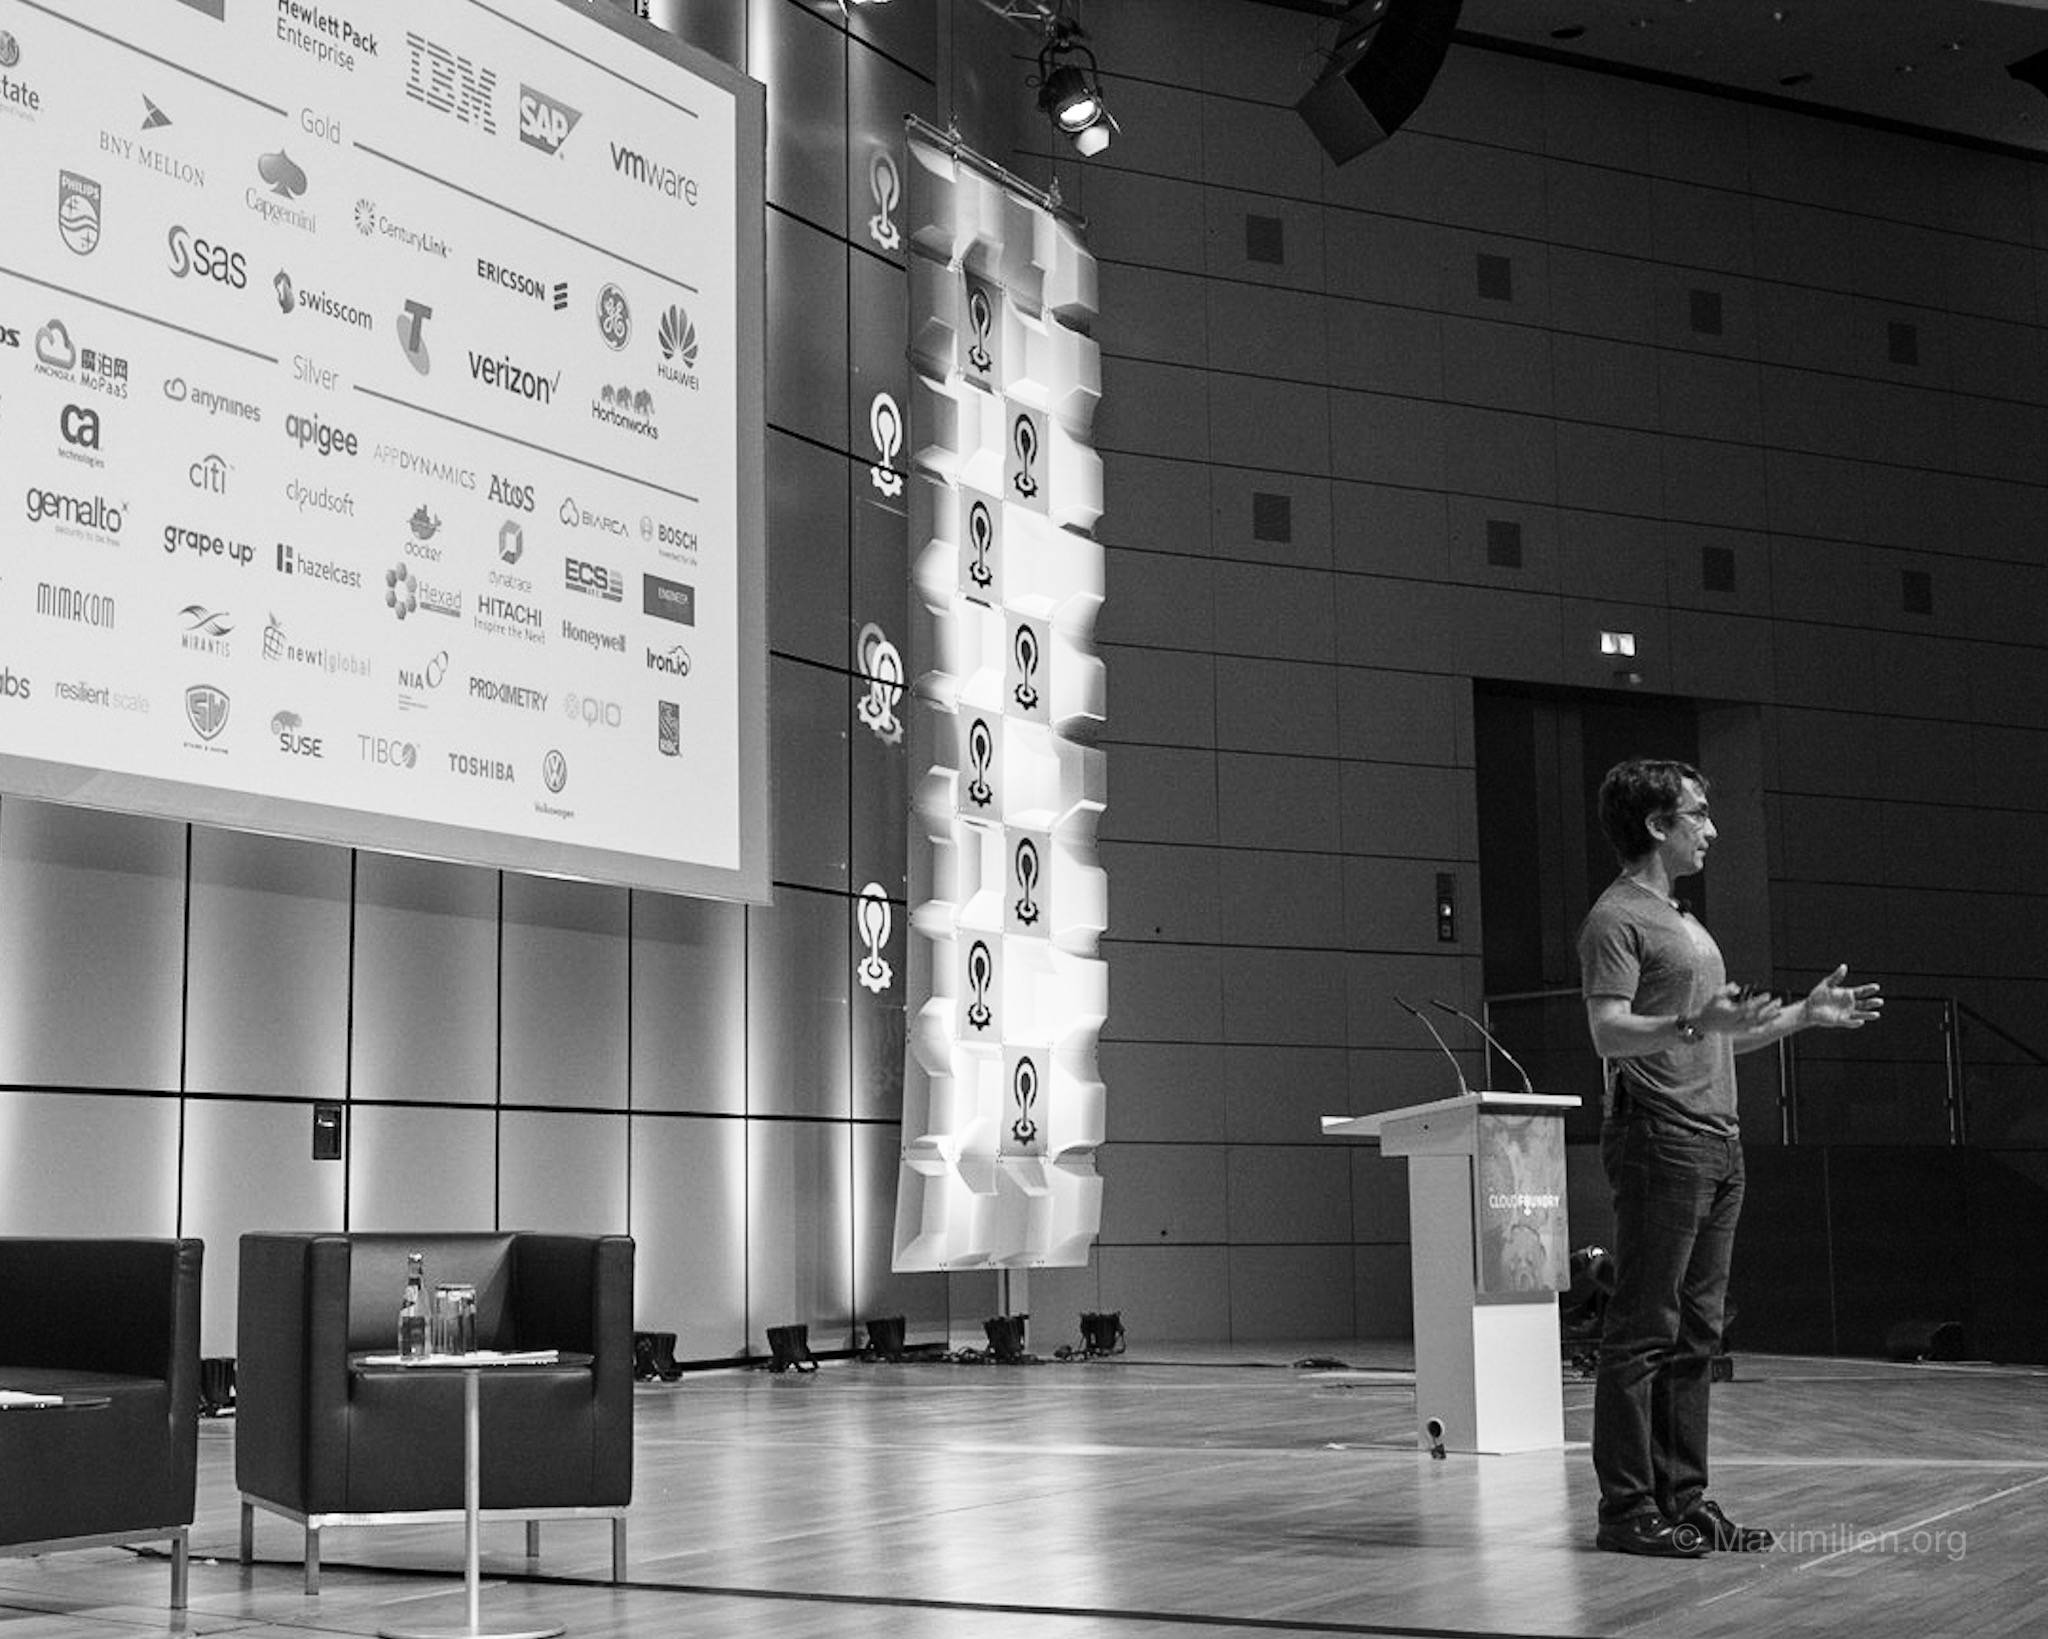 Sam Ramji first CEO of the Cloud Foundry Foundation. At CF Summit 2016 in Frankfurt, Germany